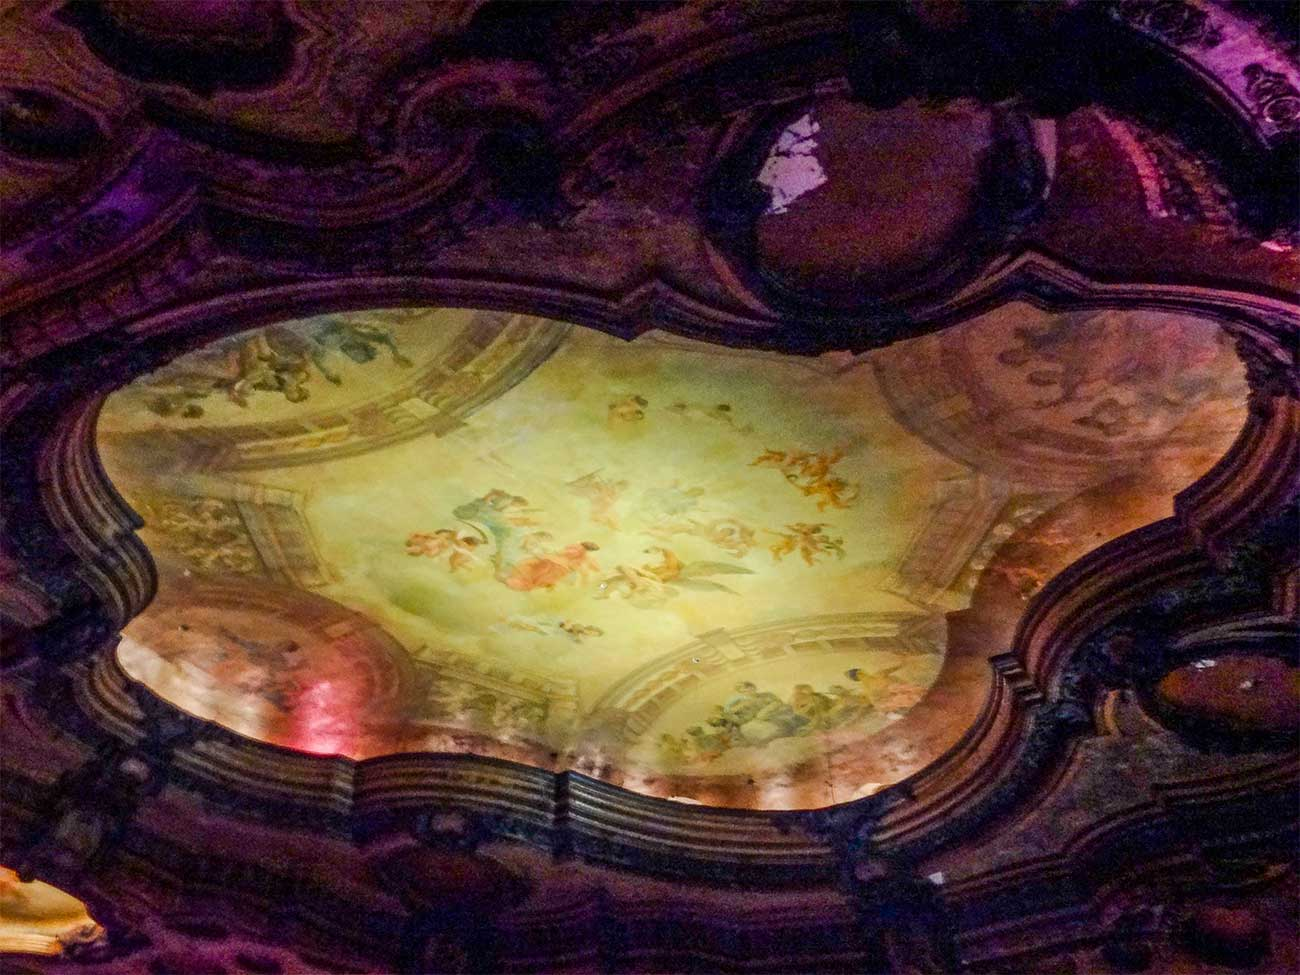 Ceiling of Los Angeles Theatre